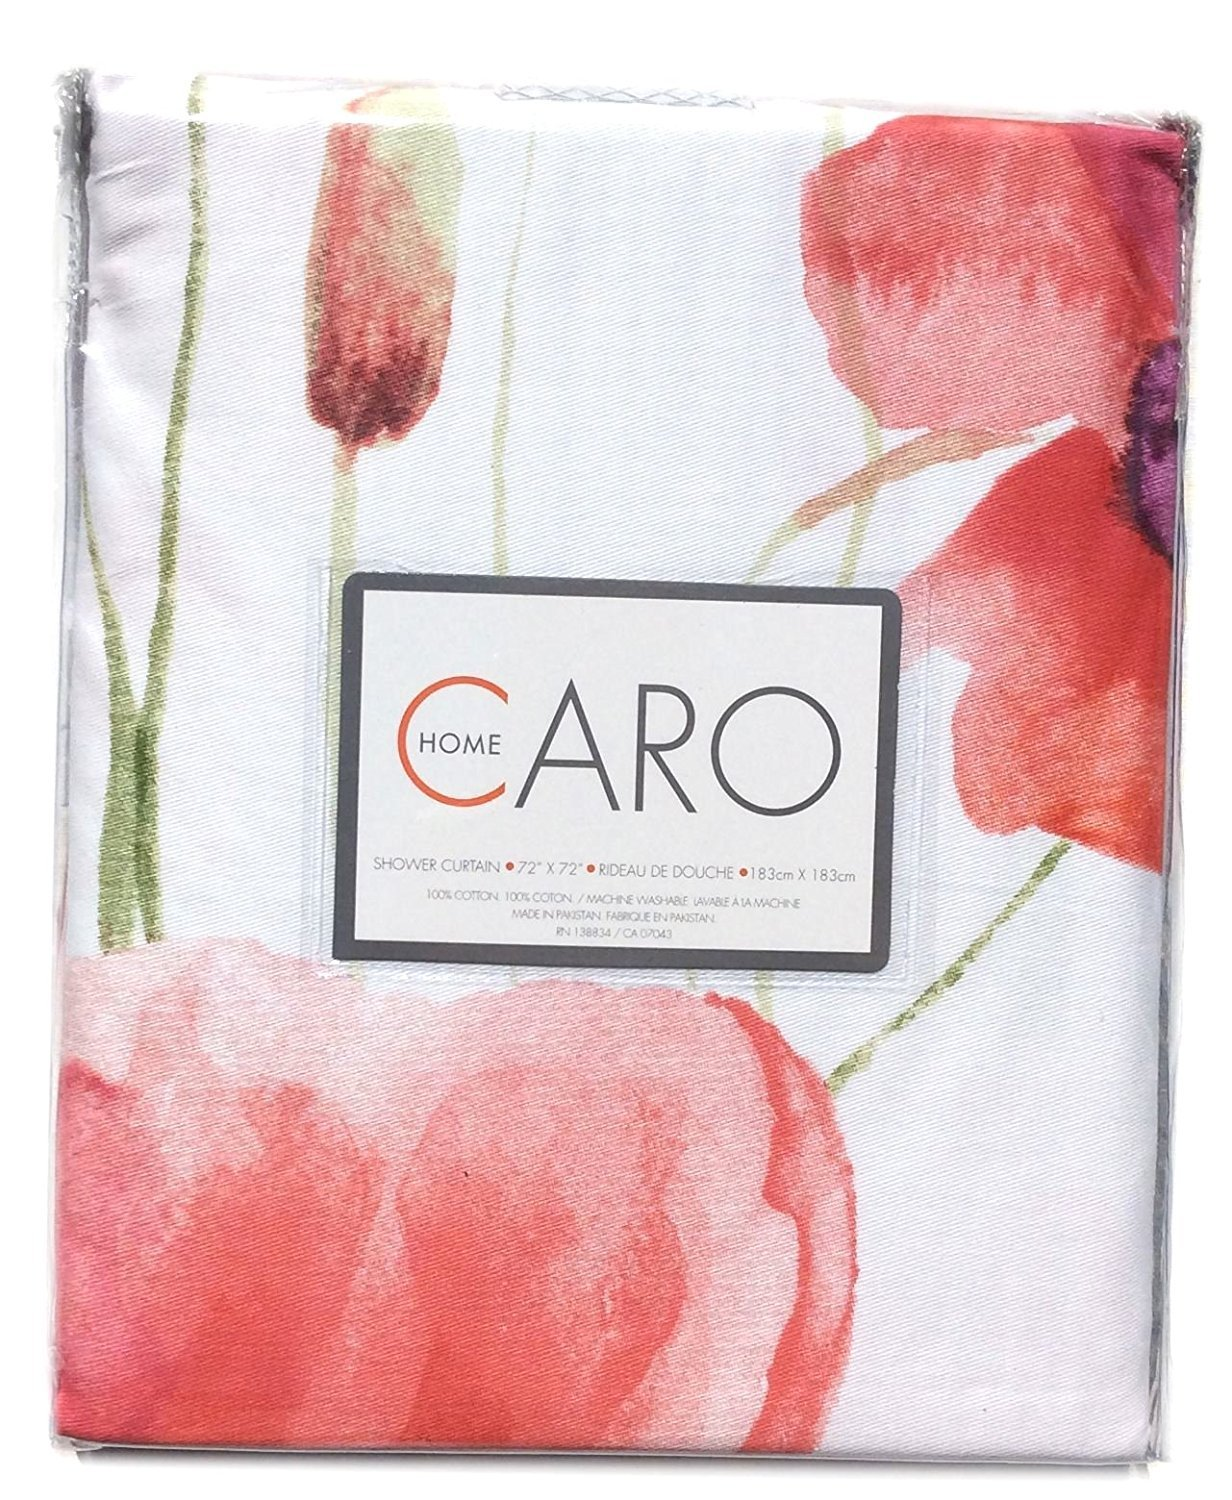 Caro Home Watercolor Poppy Flower Blossom Painting Shower Curtain Red Purple Orange Green Colorful Floral Botanical